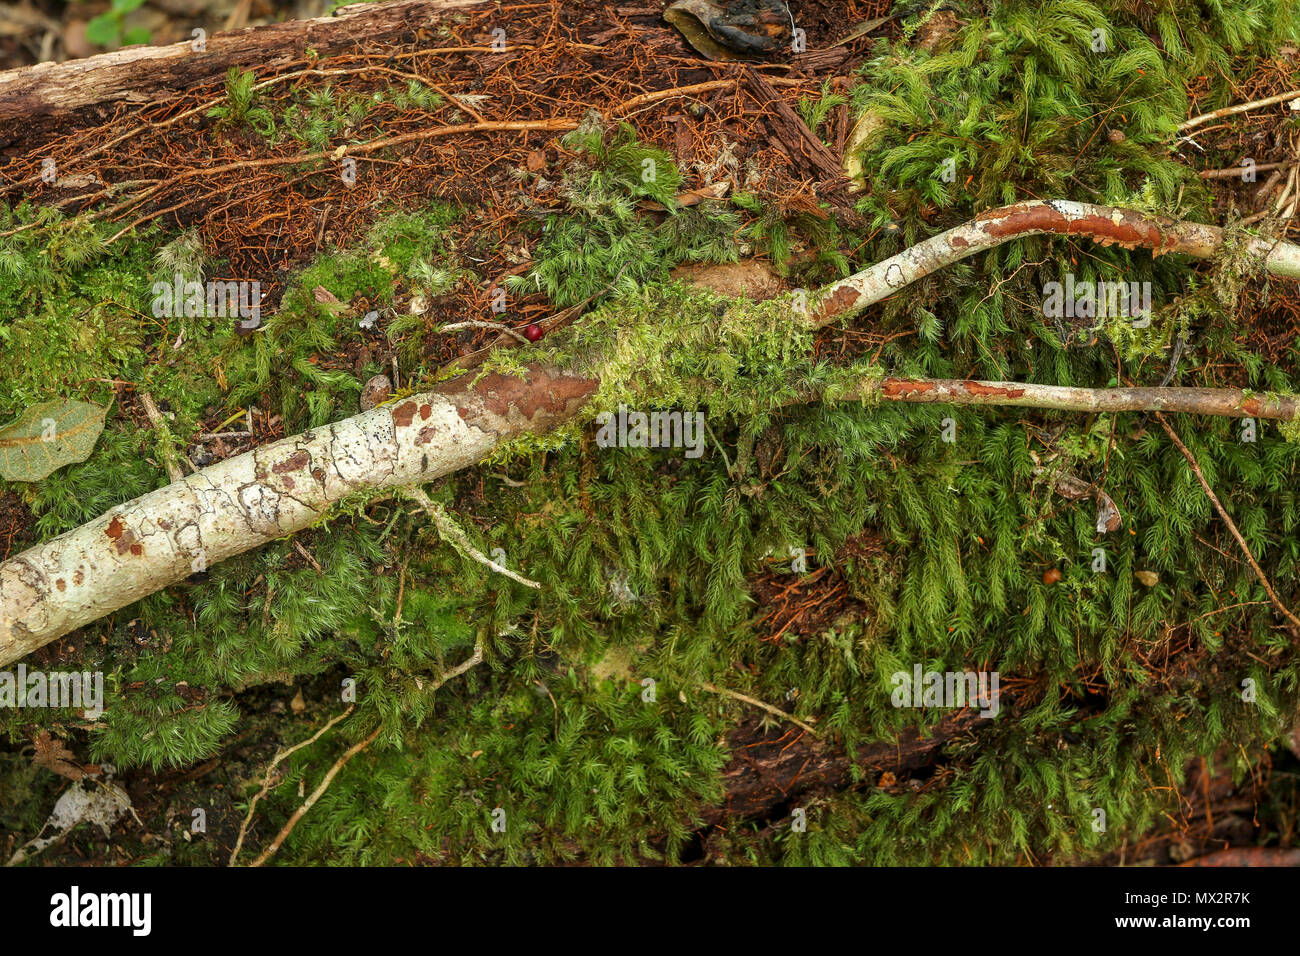 Falling twig on moss with moss covering on the Goesa trail in the Tsitsikamma National Park,  garden route, south africa - Stock Image